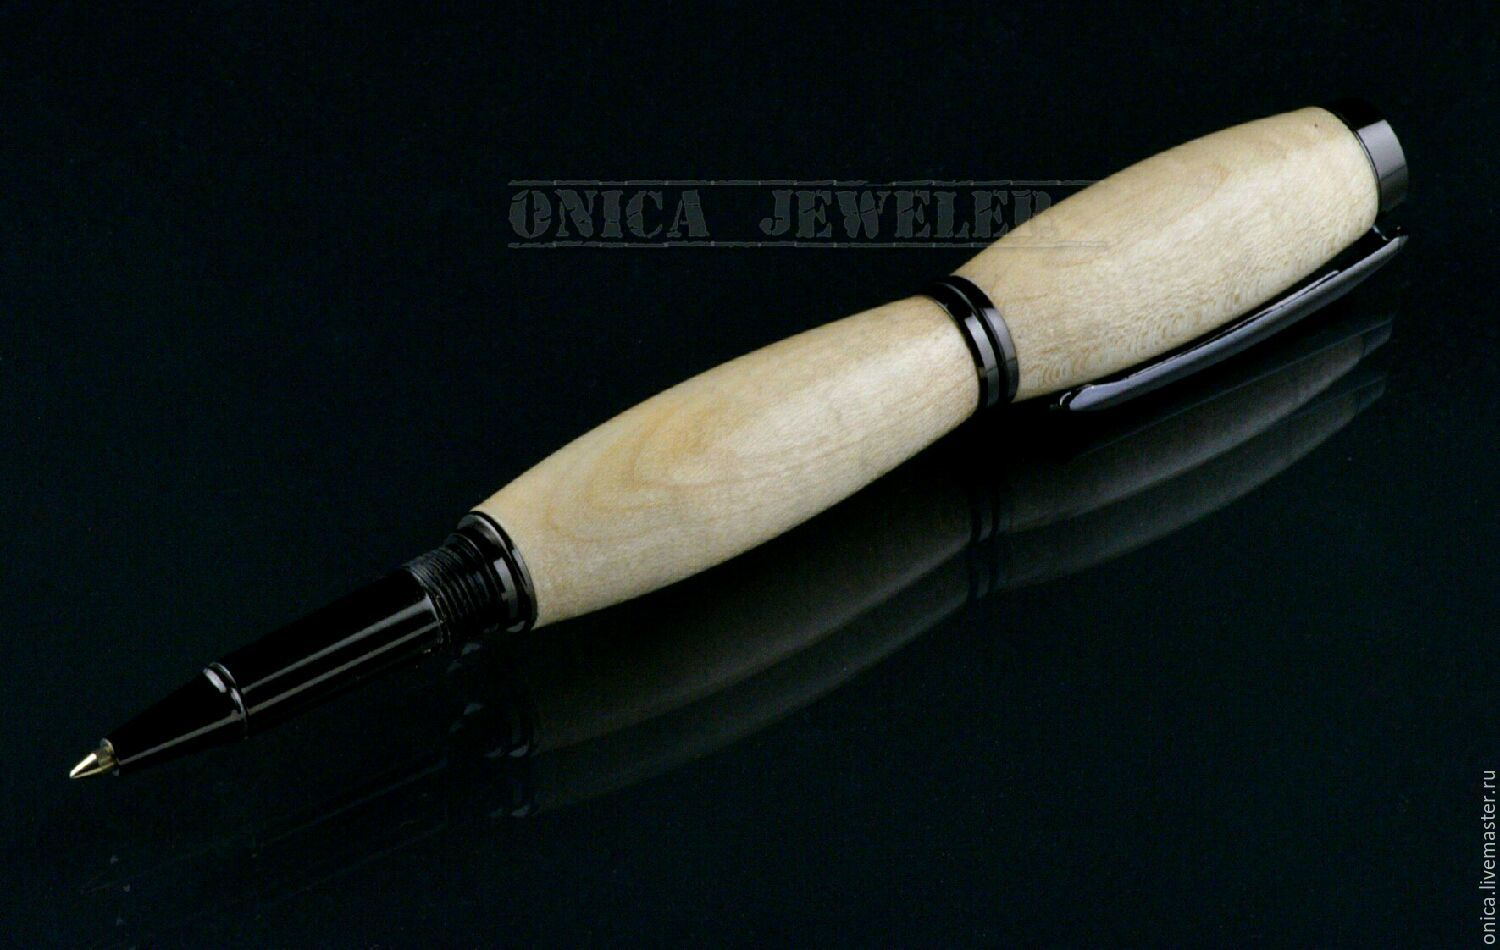 Elegant gift pen handmade. For the manufacture of pen, it was decided to use stabilized Maple wood, and the result was a pleasant surprise.